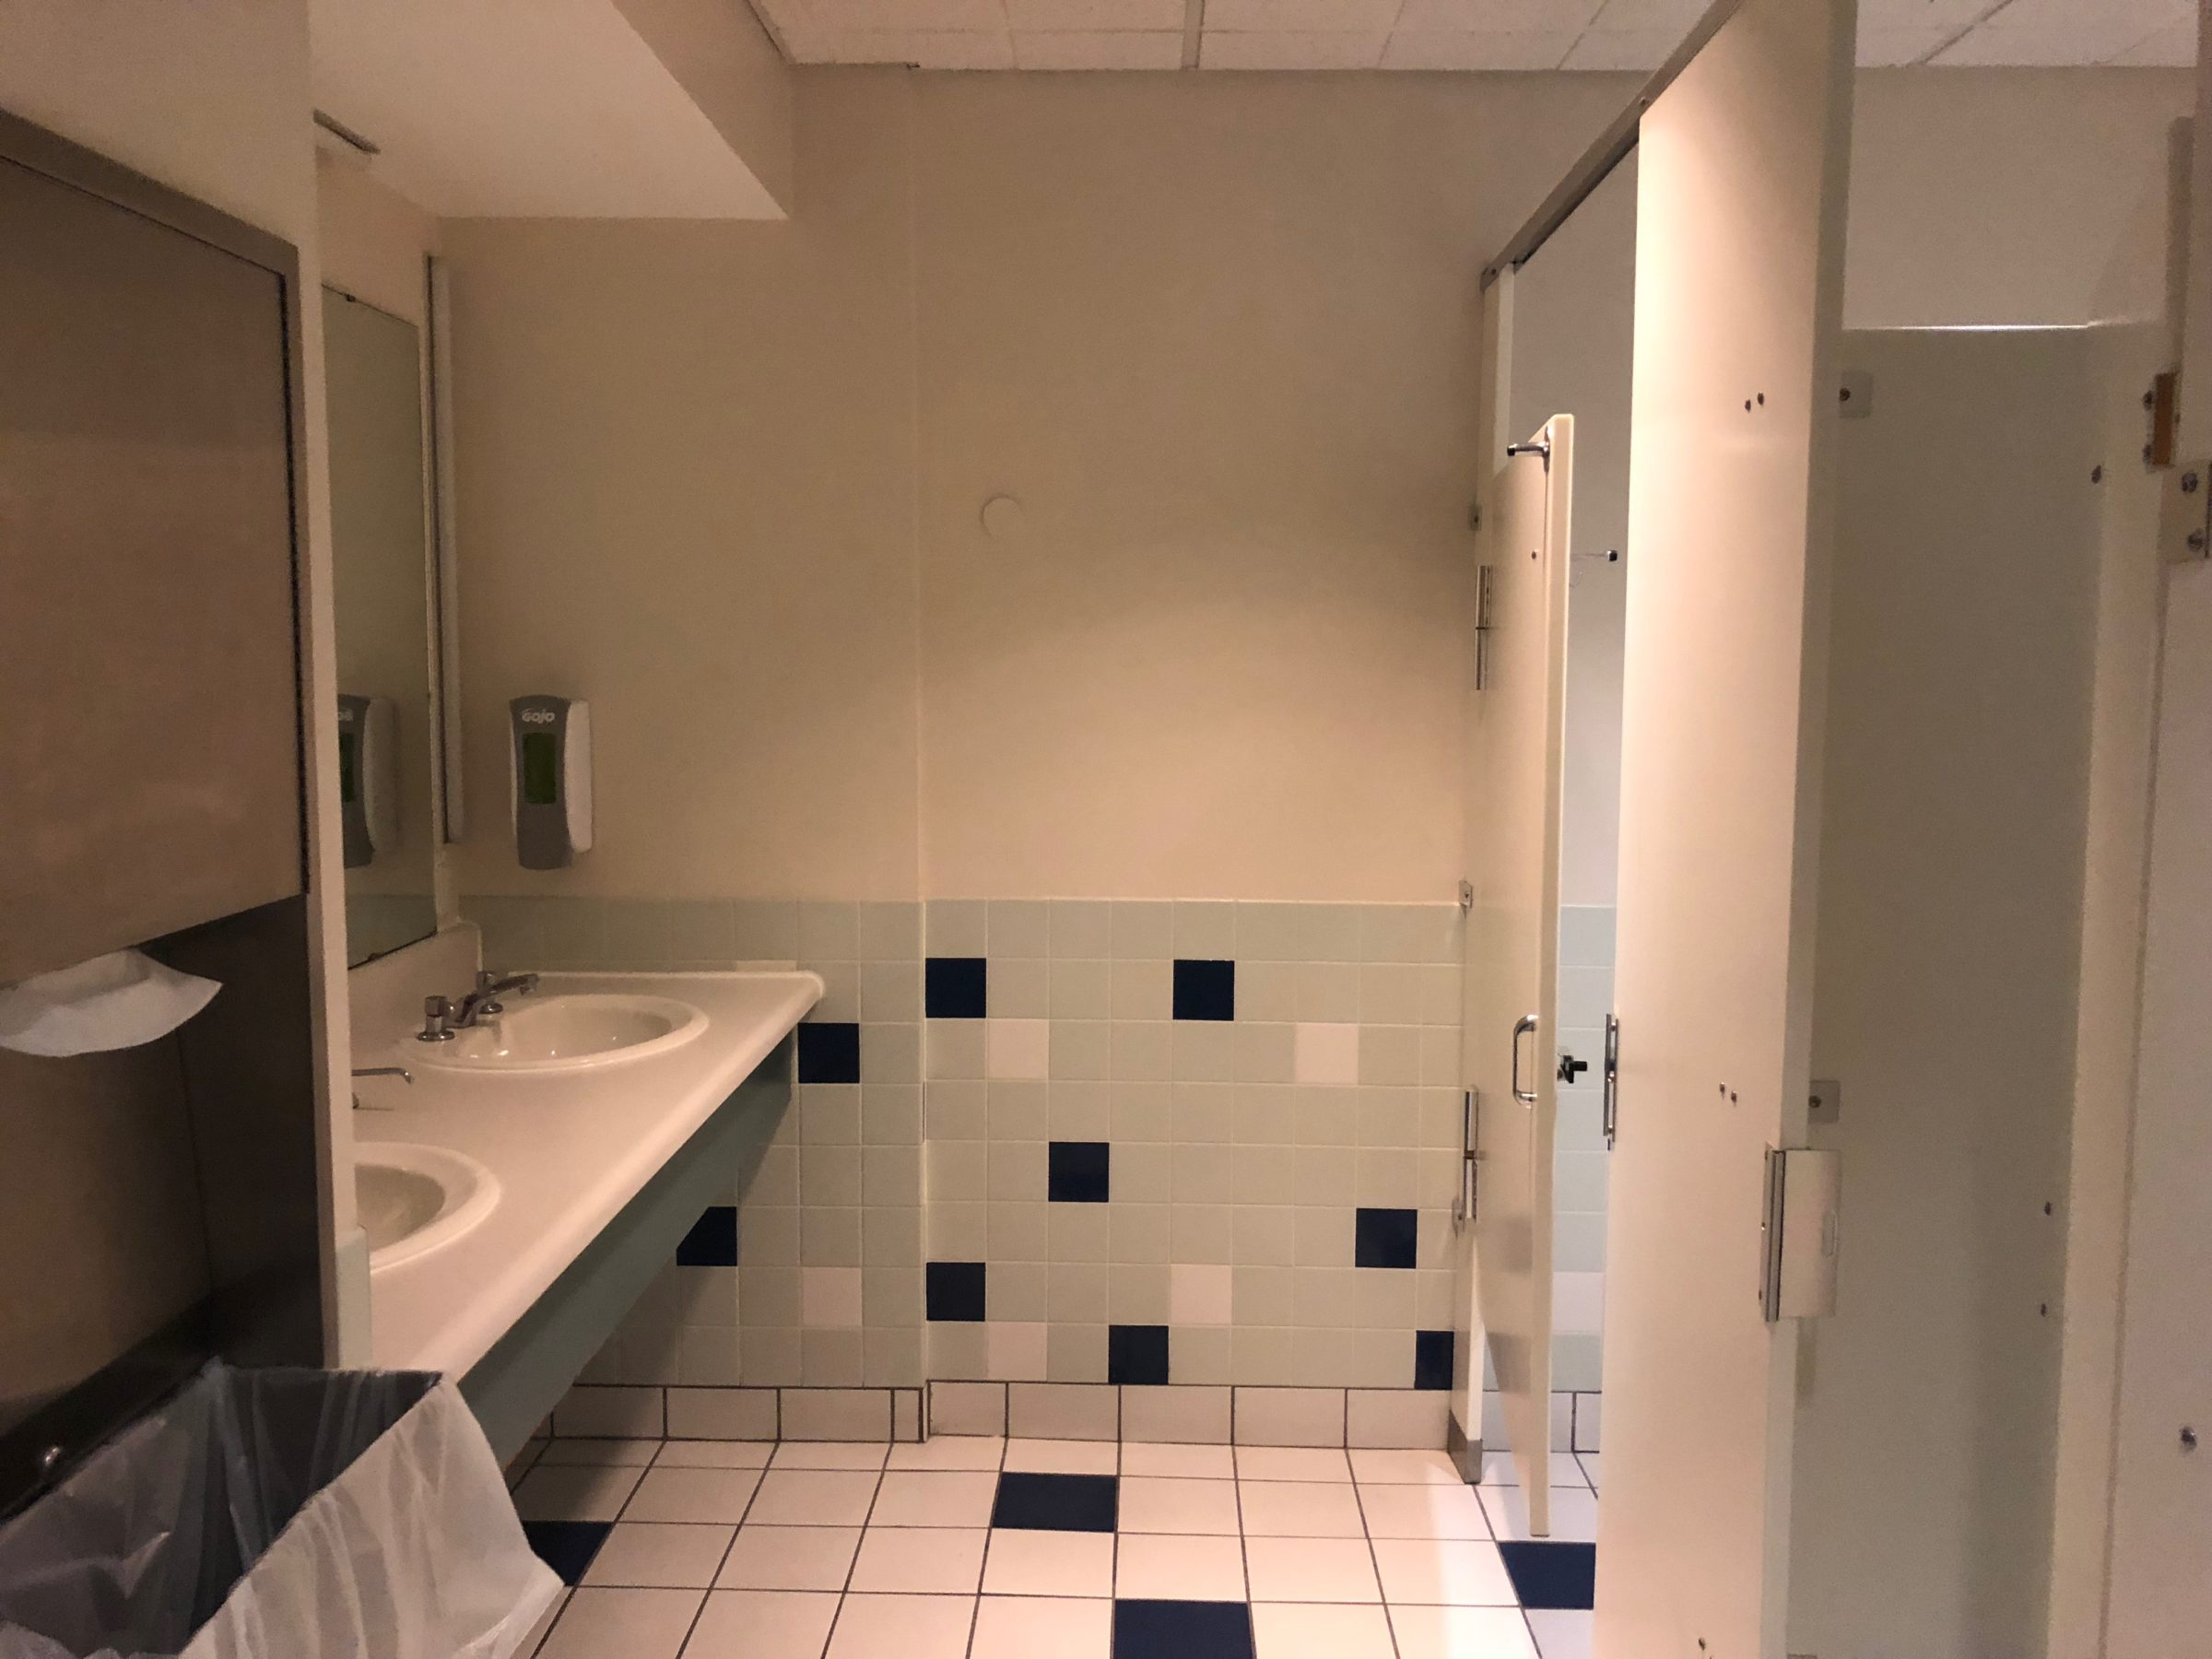 Restroom with 2 sinks and large mirror along the left side and 4 bathroom stalls along the right side. The floor is white tile with blue tile accent. The wall is tiled halfway up with light green tiles interspersed with navy and white tiles.